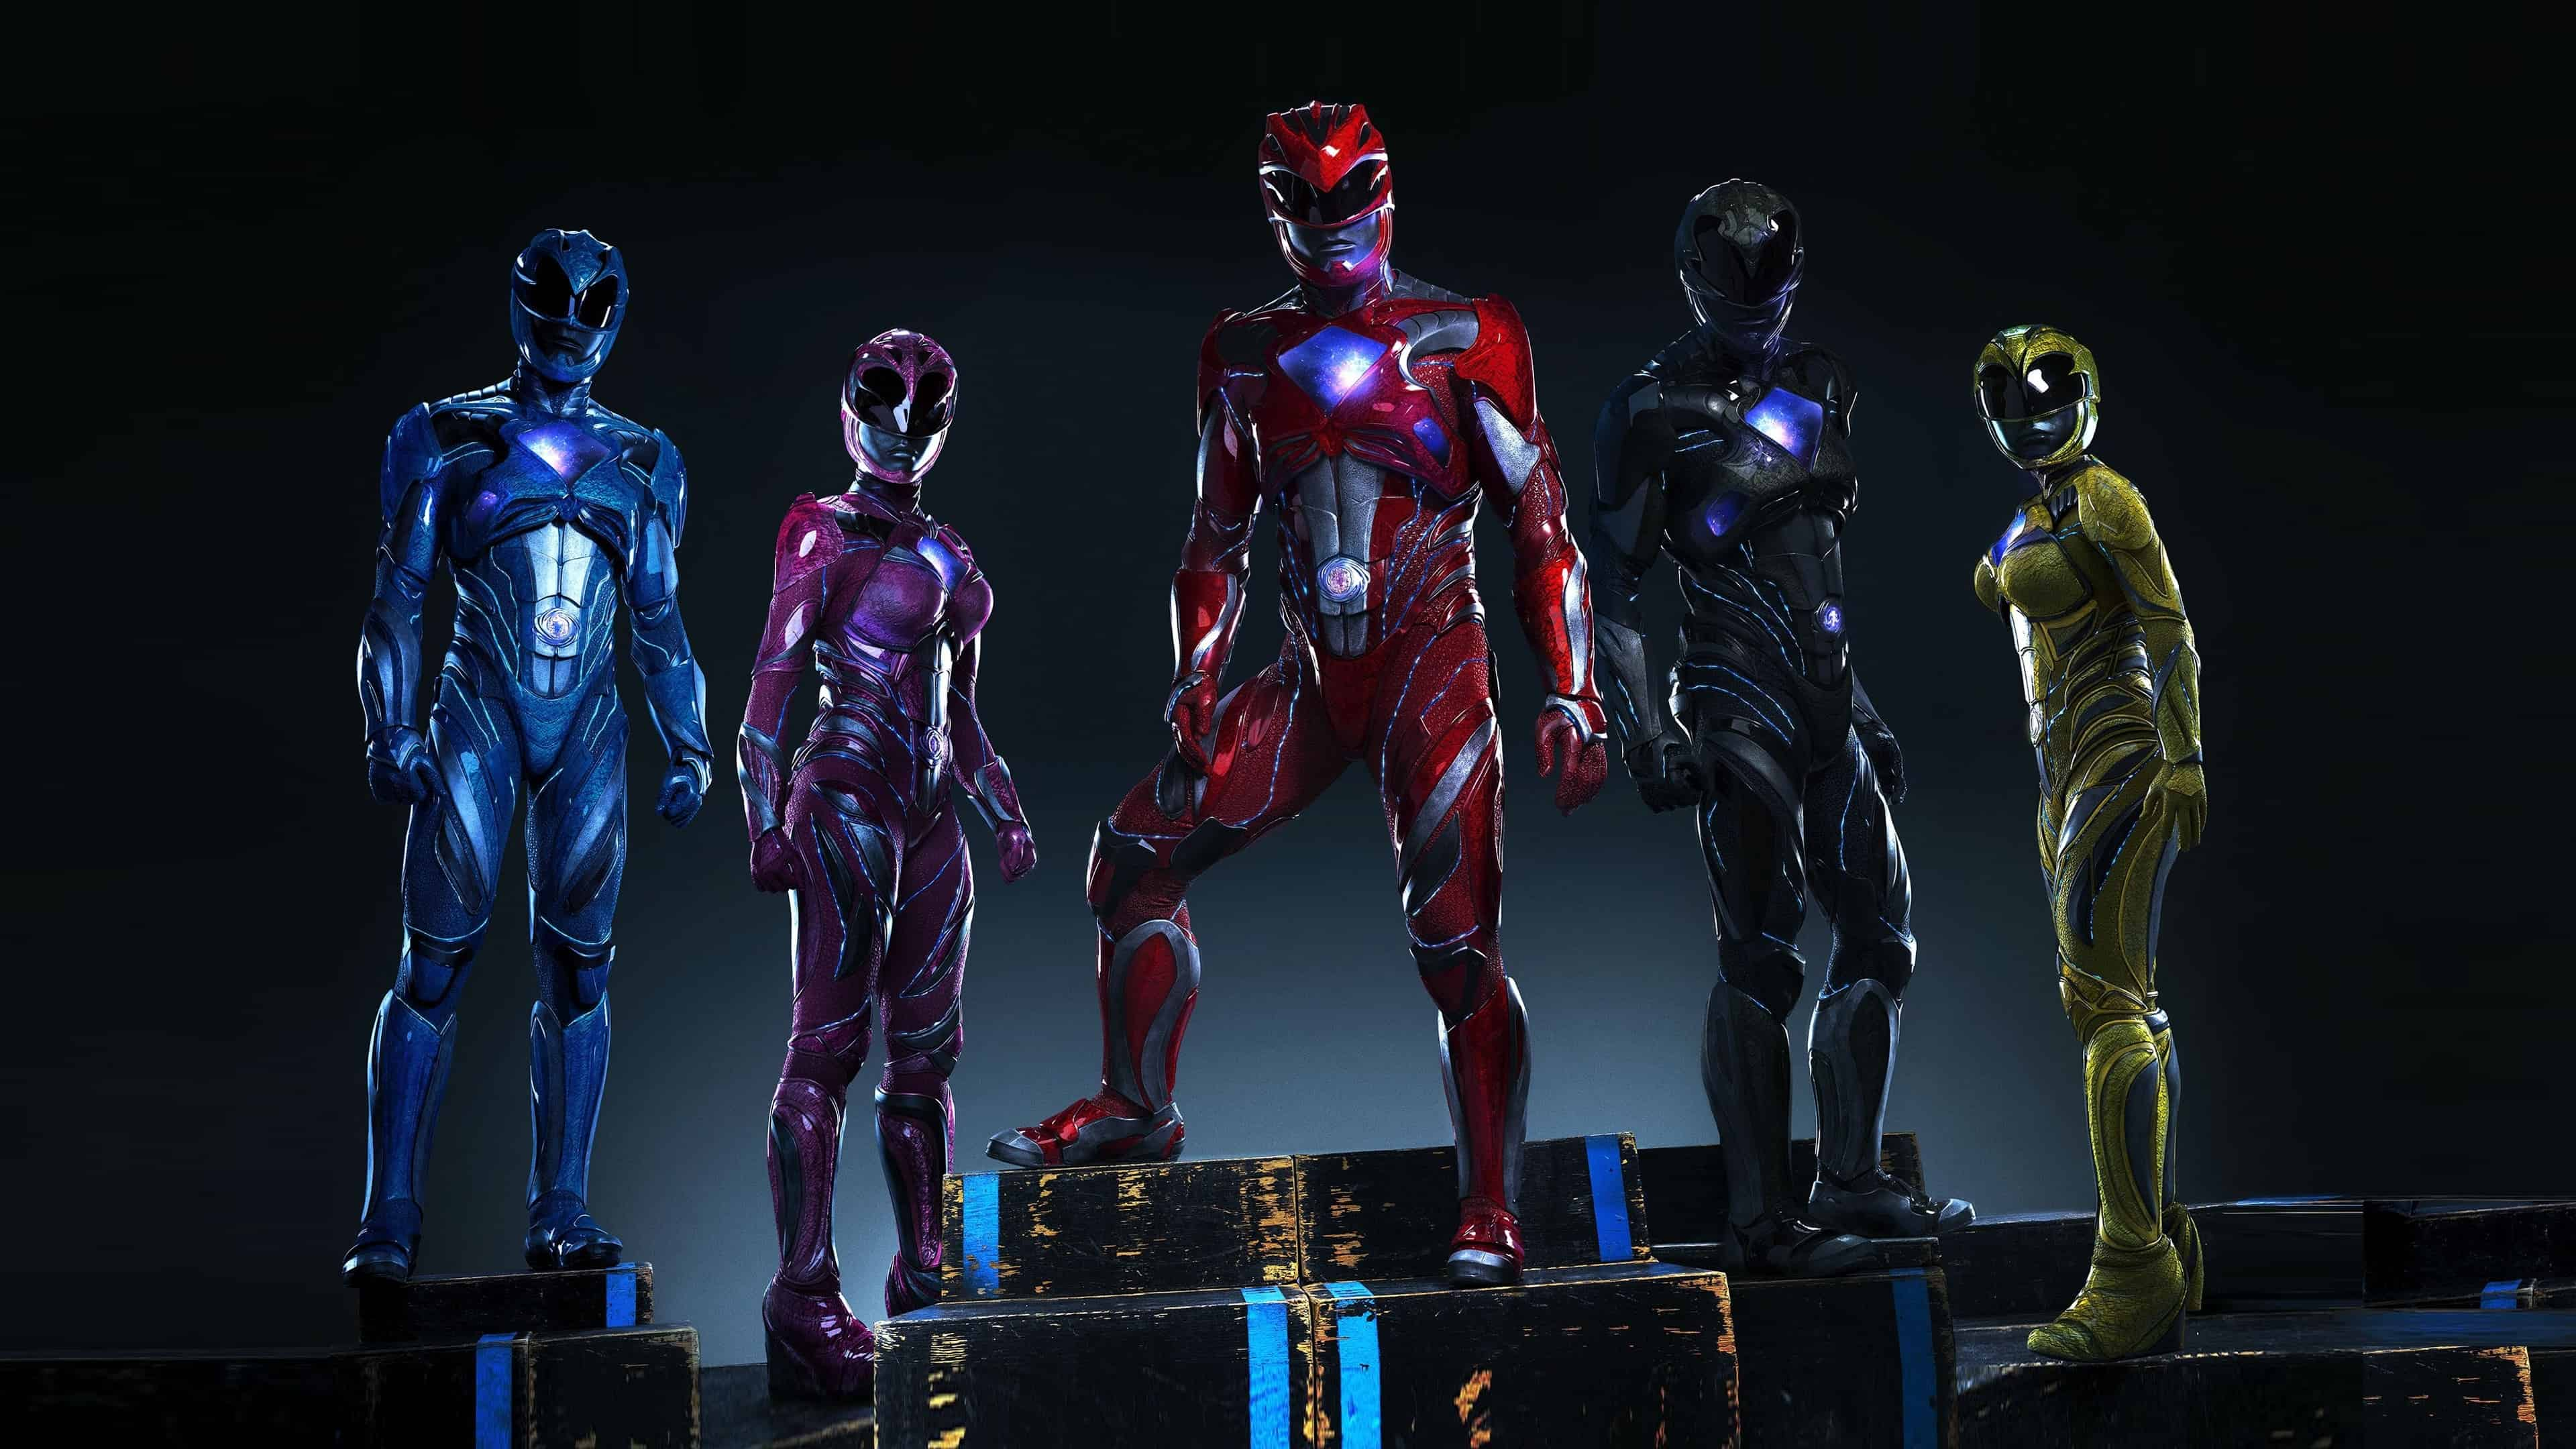 power rangers movie uhd 4k wallpaper